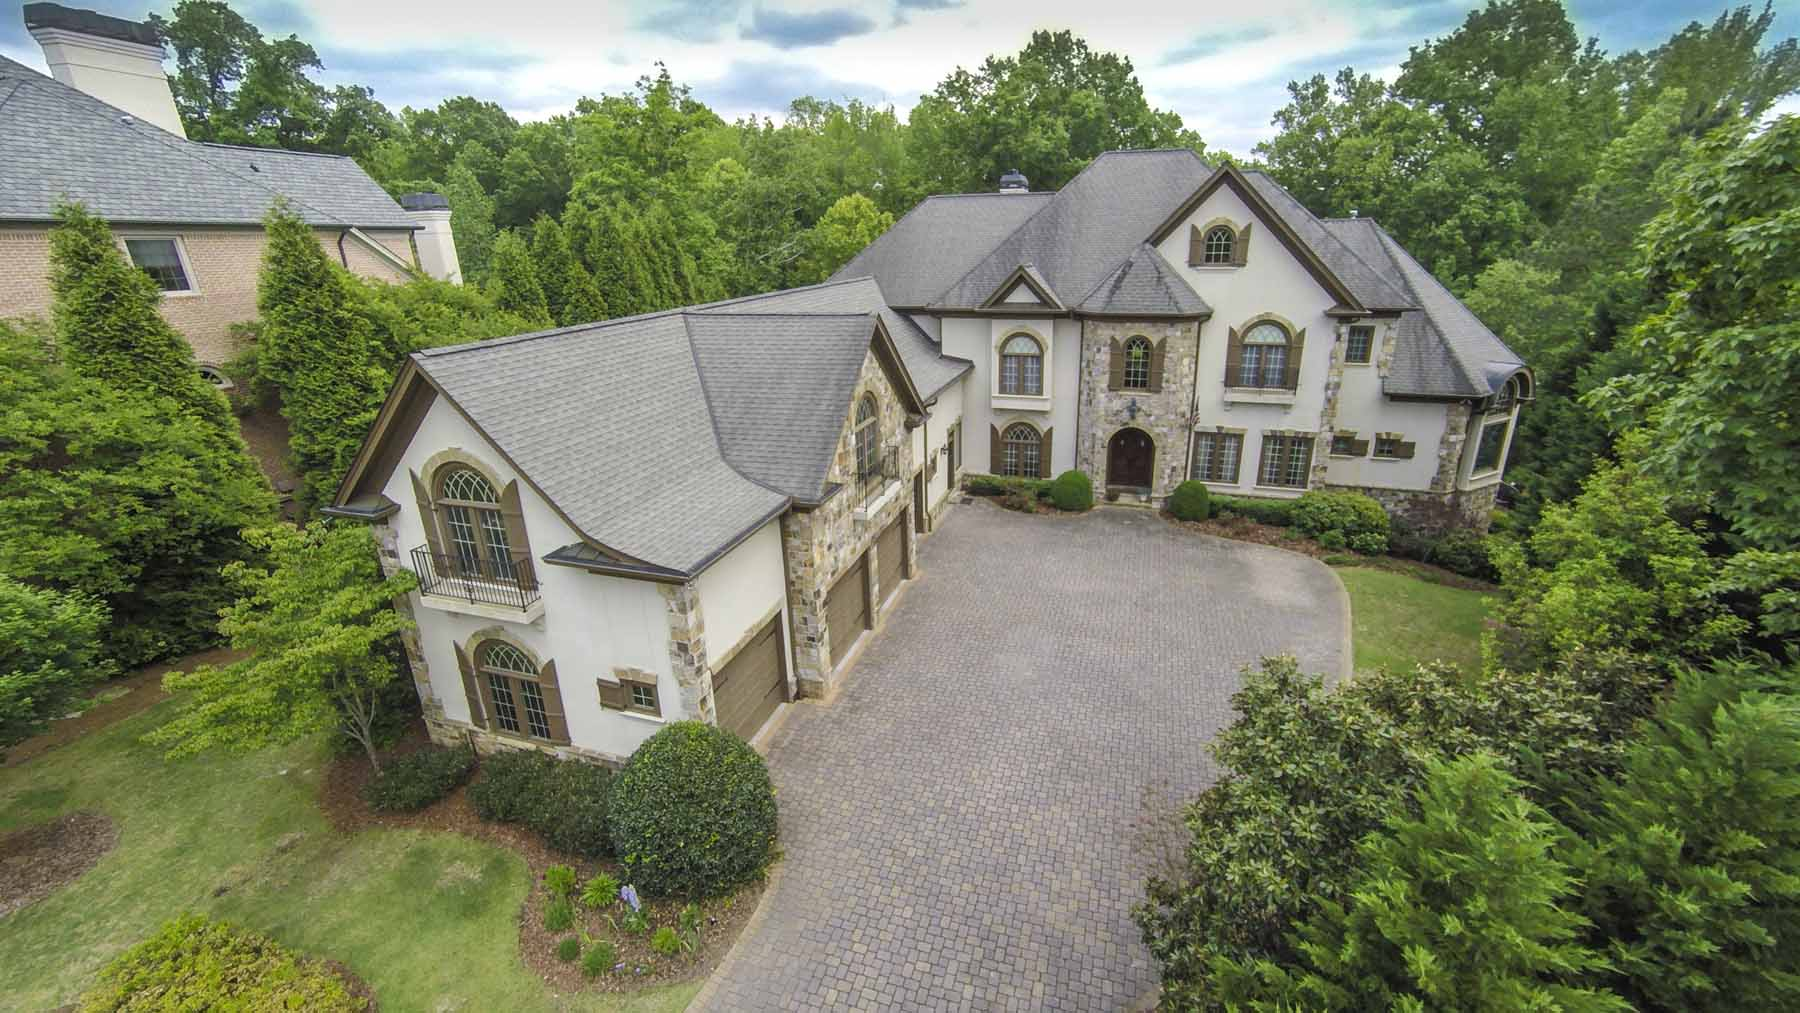 独户住宅 为 销售 在 Stunning Home Meets Modern Updates on the Sparkling Chattahoochee River 500 Covington Cove 阿法乐特, 乔治亚州, 30022 美国